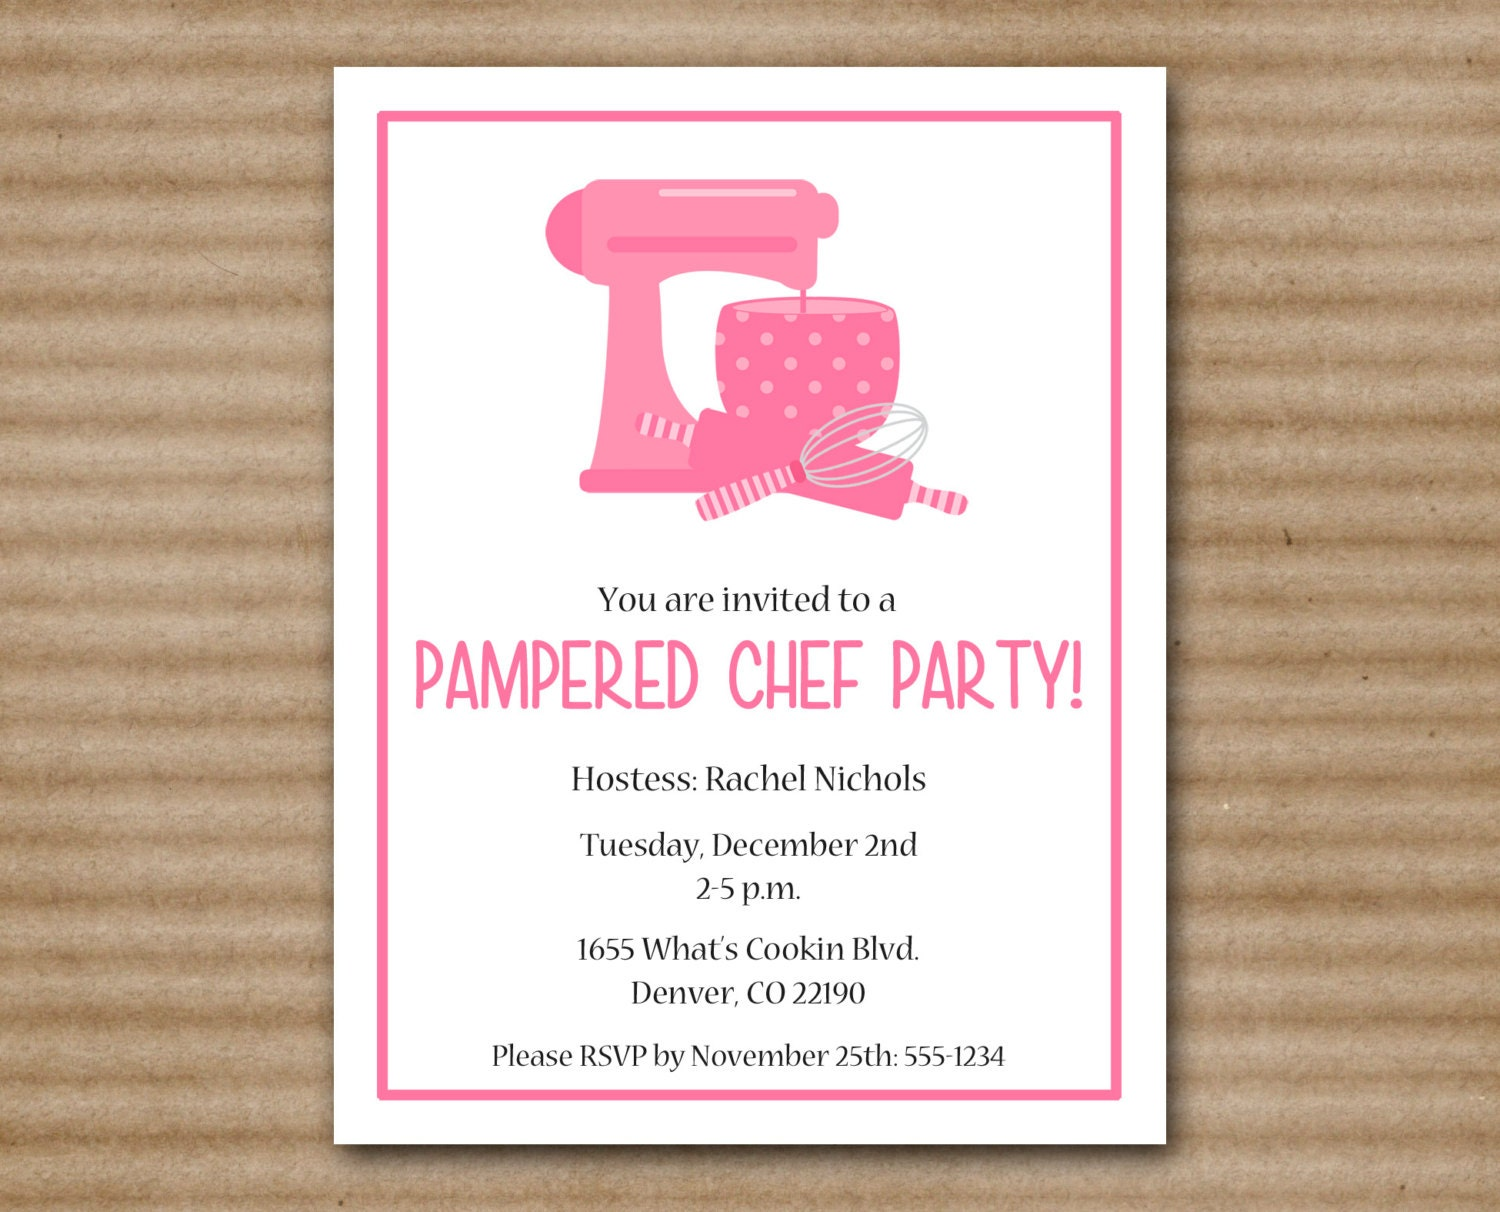 items similar to pampered chef party invitation for pampered chef invitation template. Black Bedroom Furniture Sets. Home Design Ideas